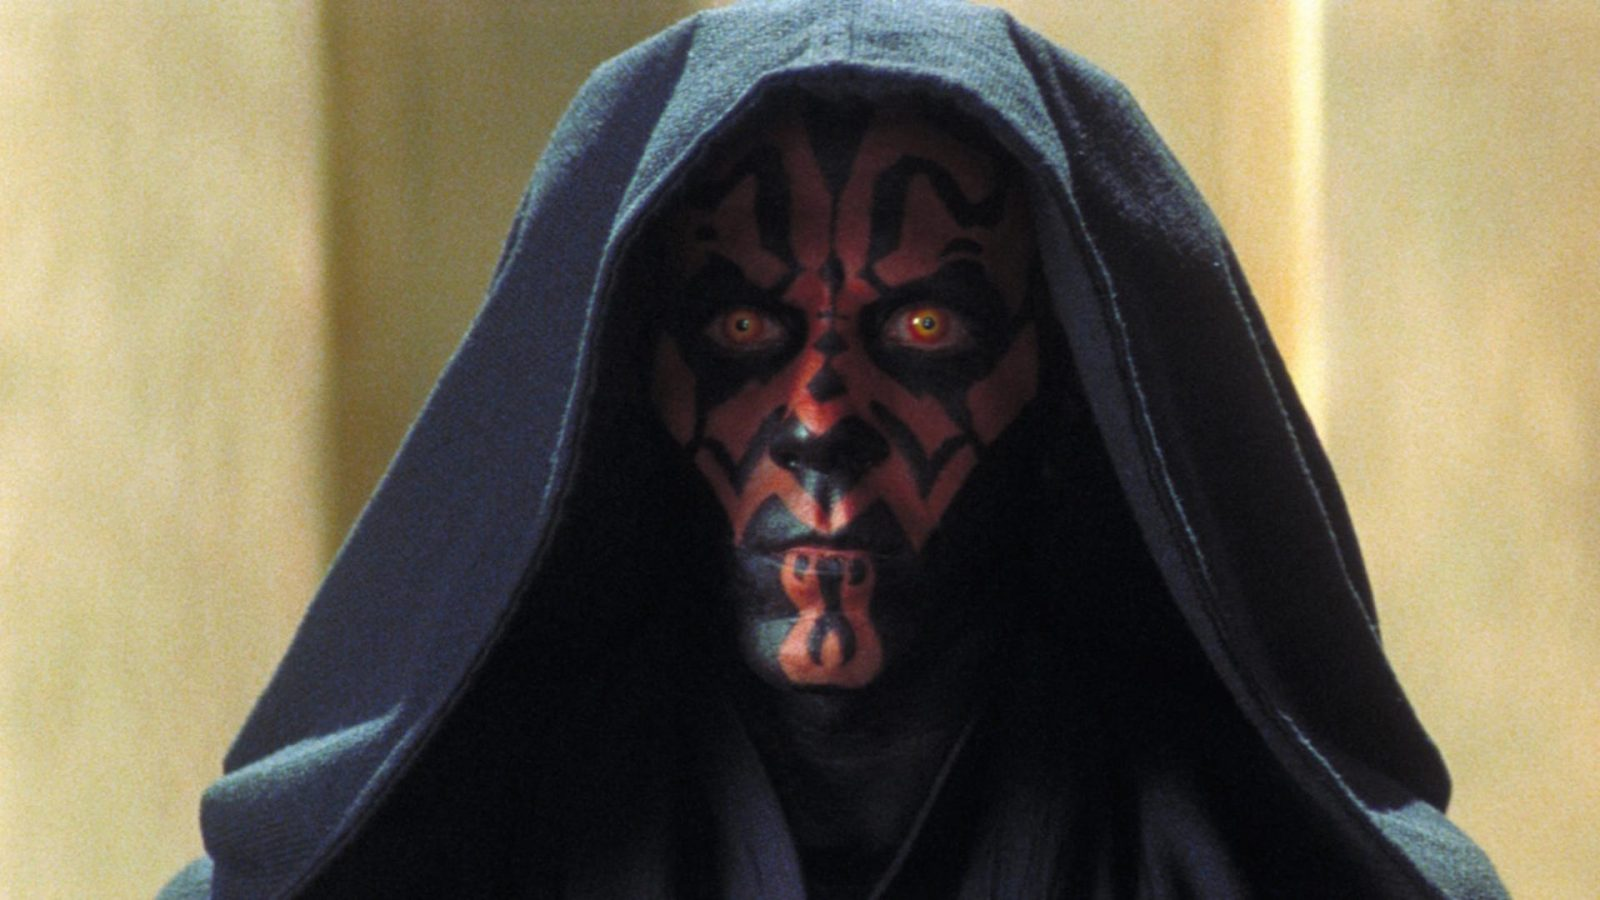 Is Darth Maul in Star Wars Jedi: Fallen Order? There's Strong Evidence For It After the Latest Reveals